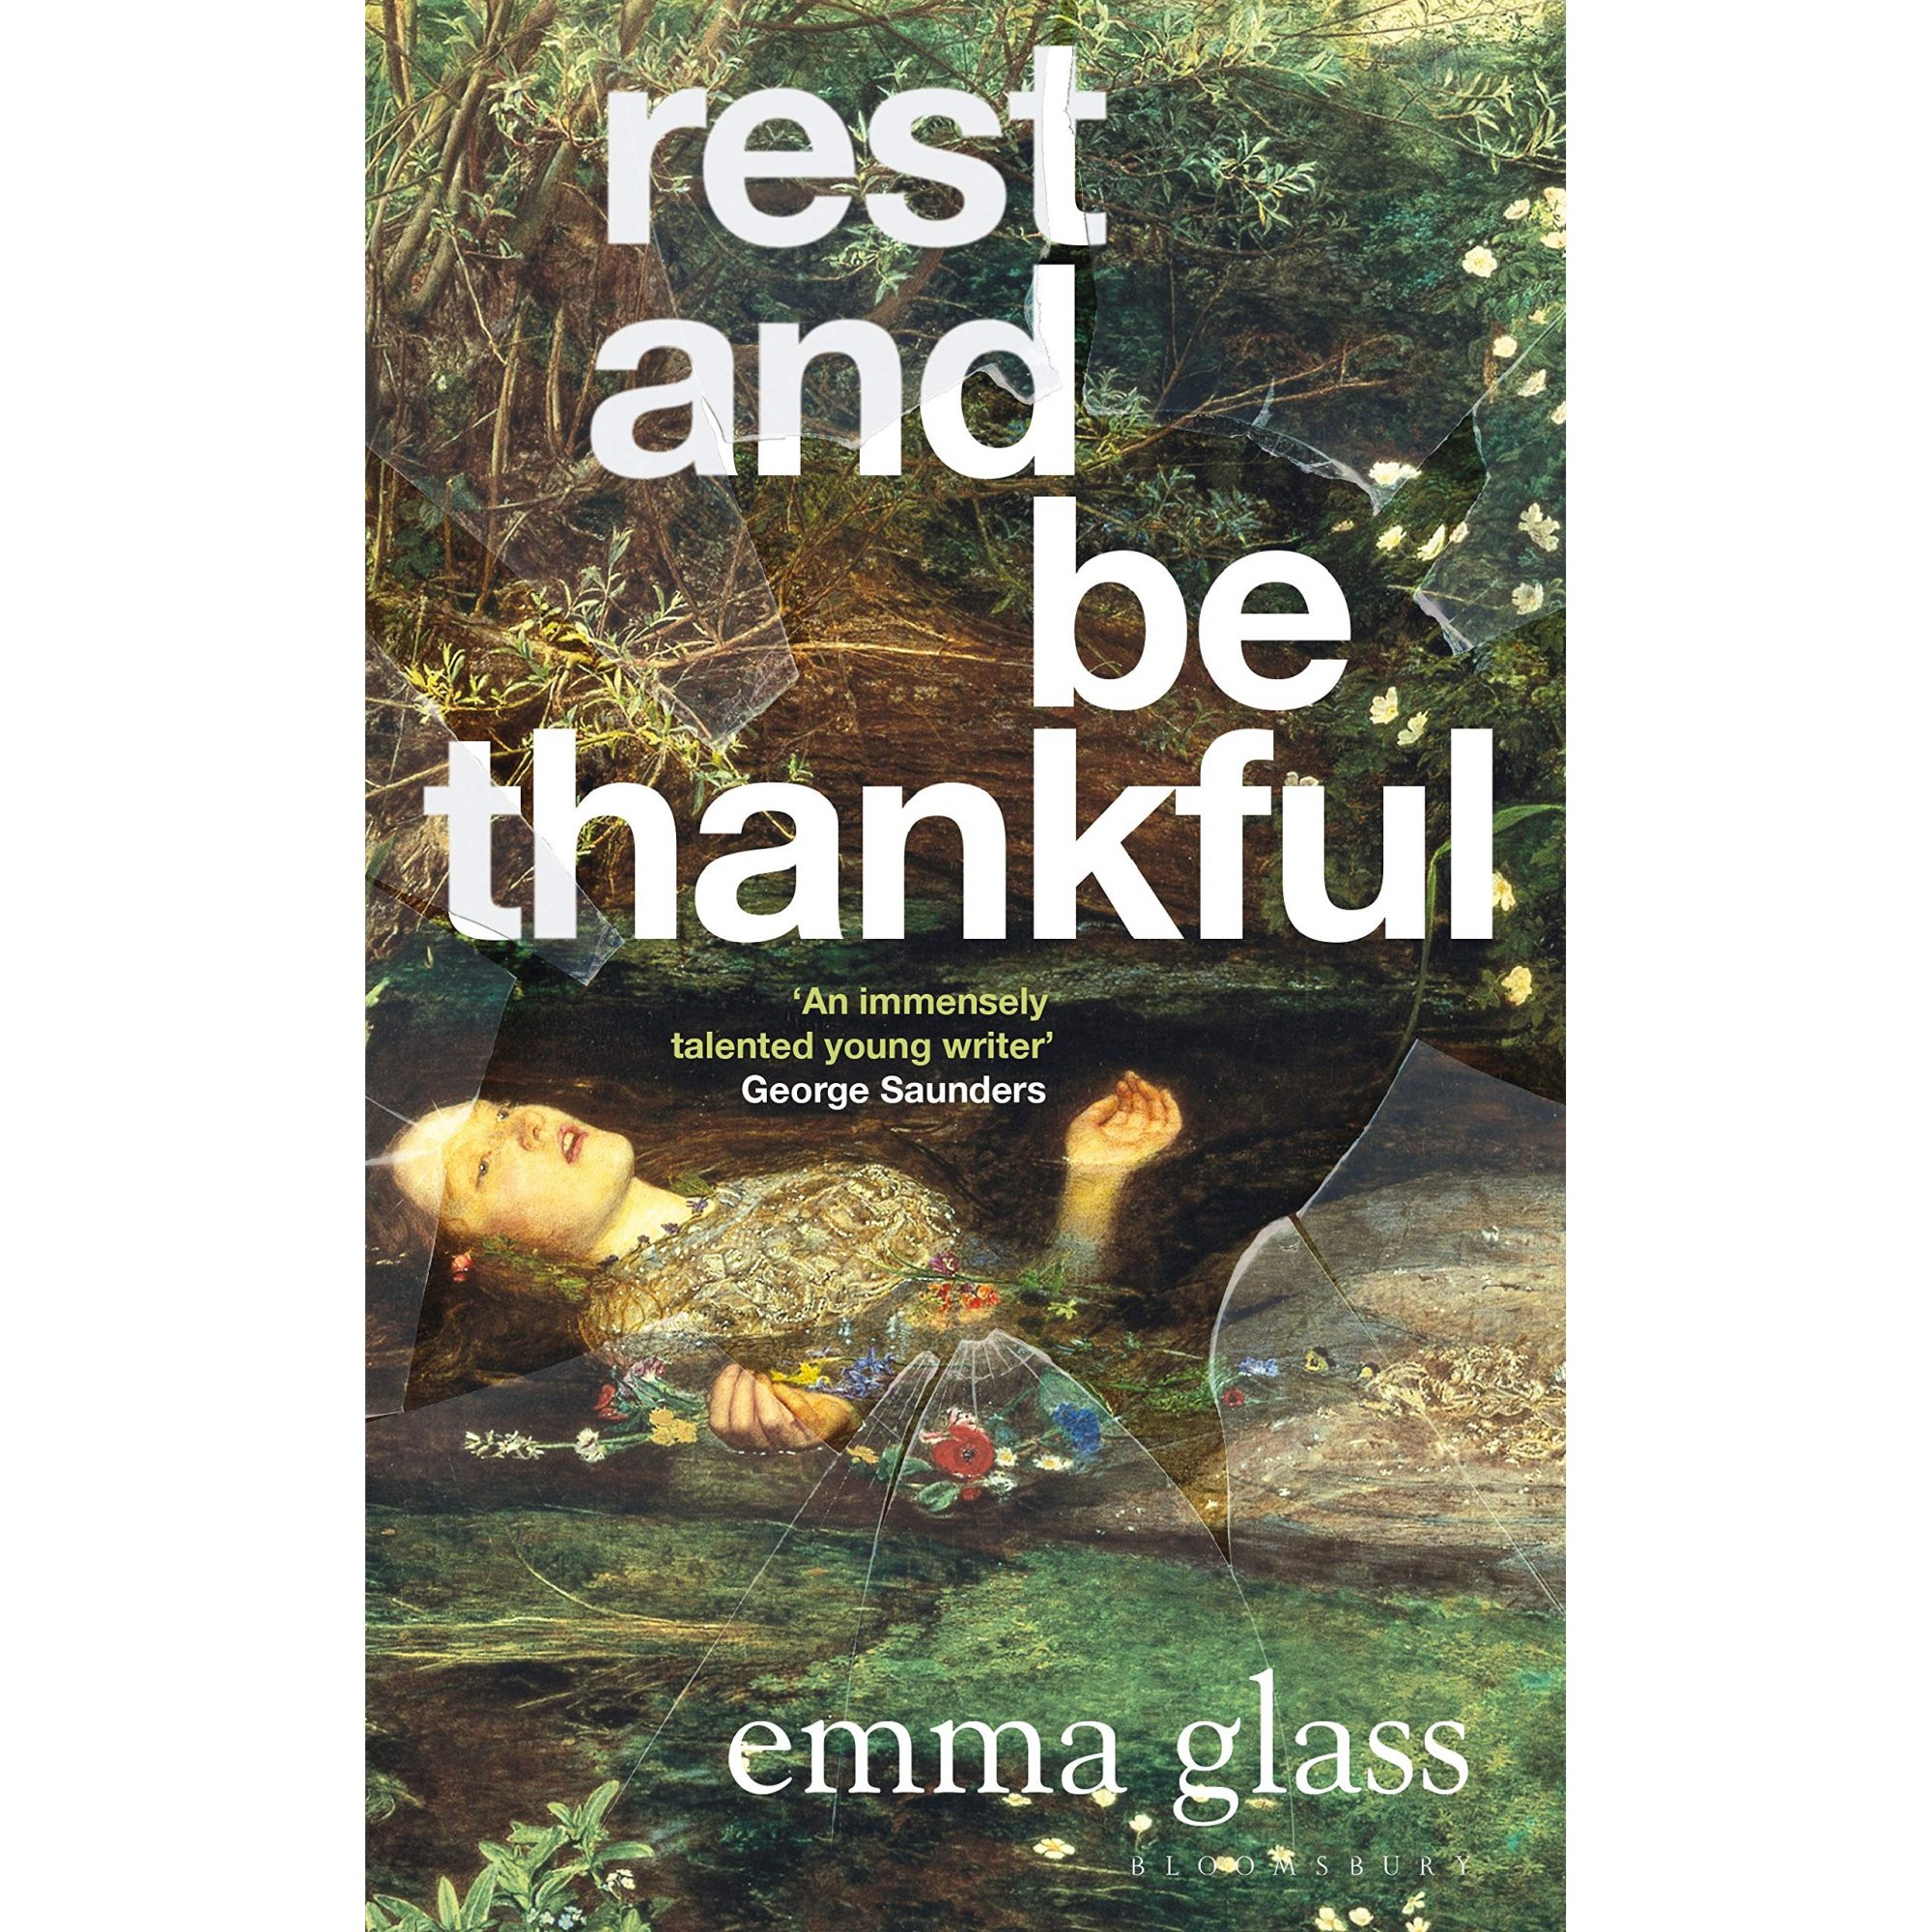 Best Books 2020: Rest and Be Thankful